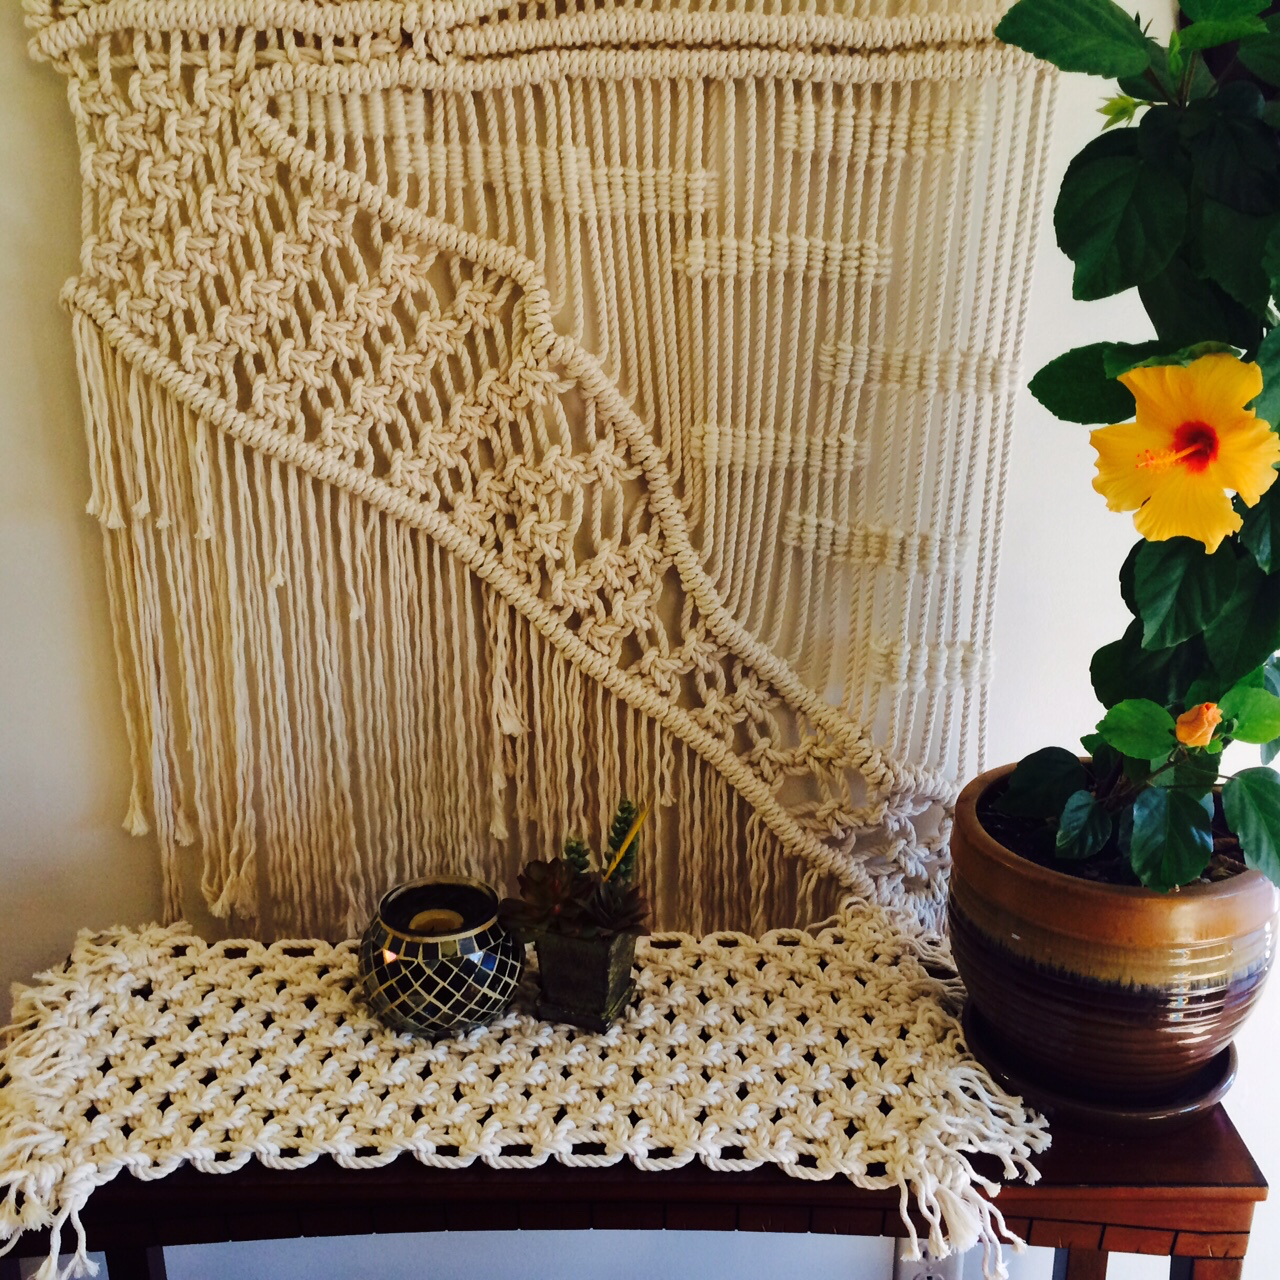 Macrame Table Runner with Landscape view.jpg